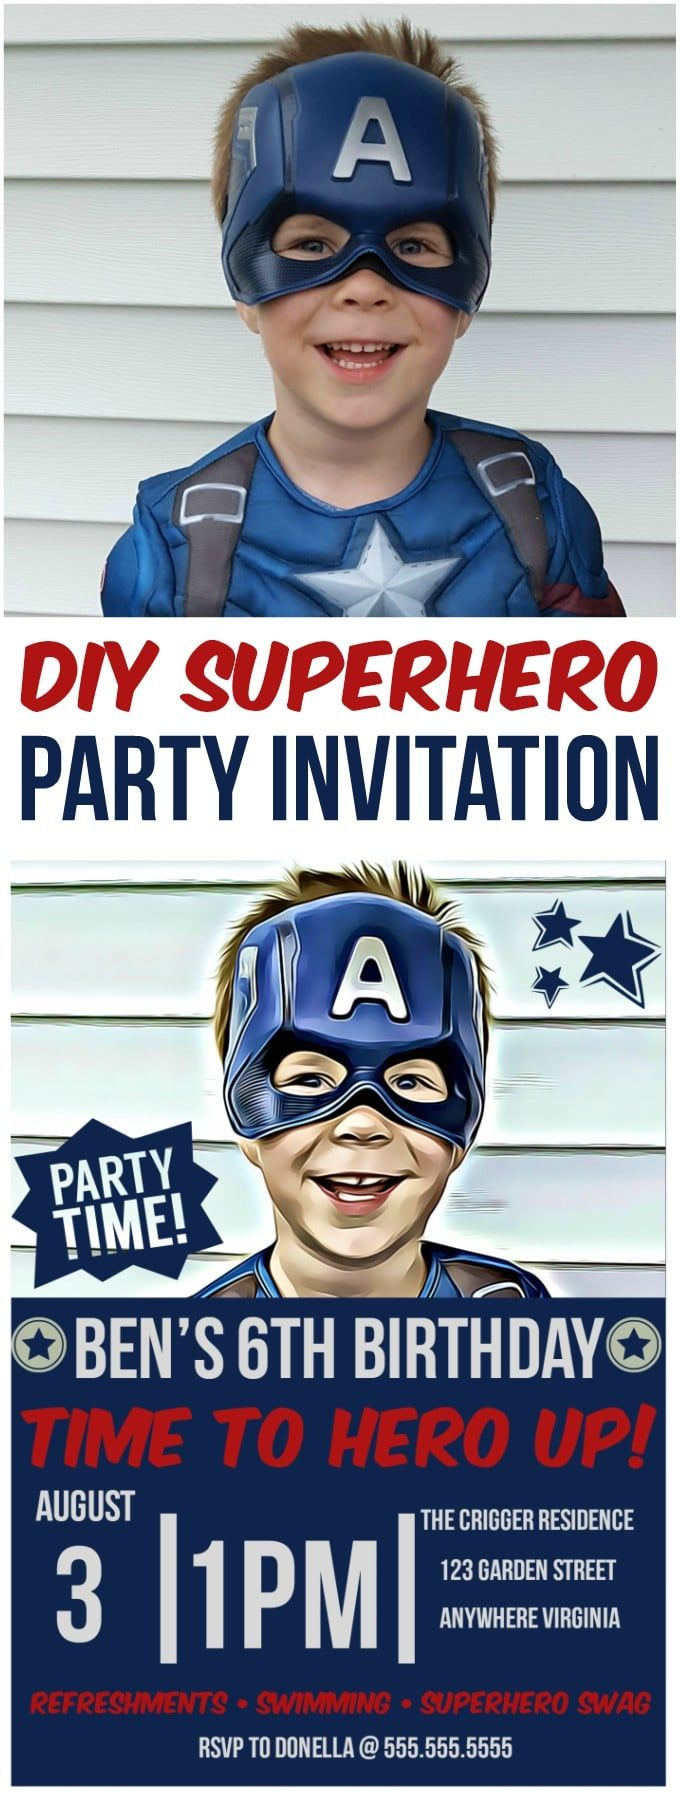 Make your own diy superhero party invitations using BeFunky's cartoonizer, digital art effects and invitation templates! #sponsored